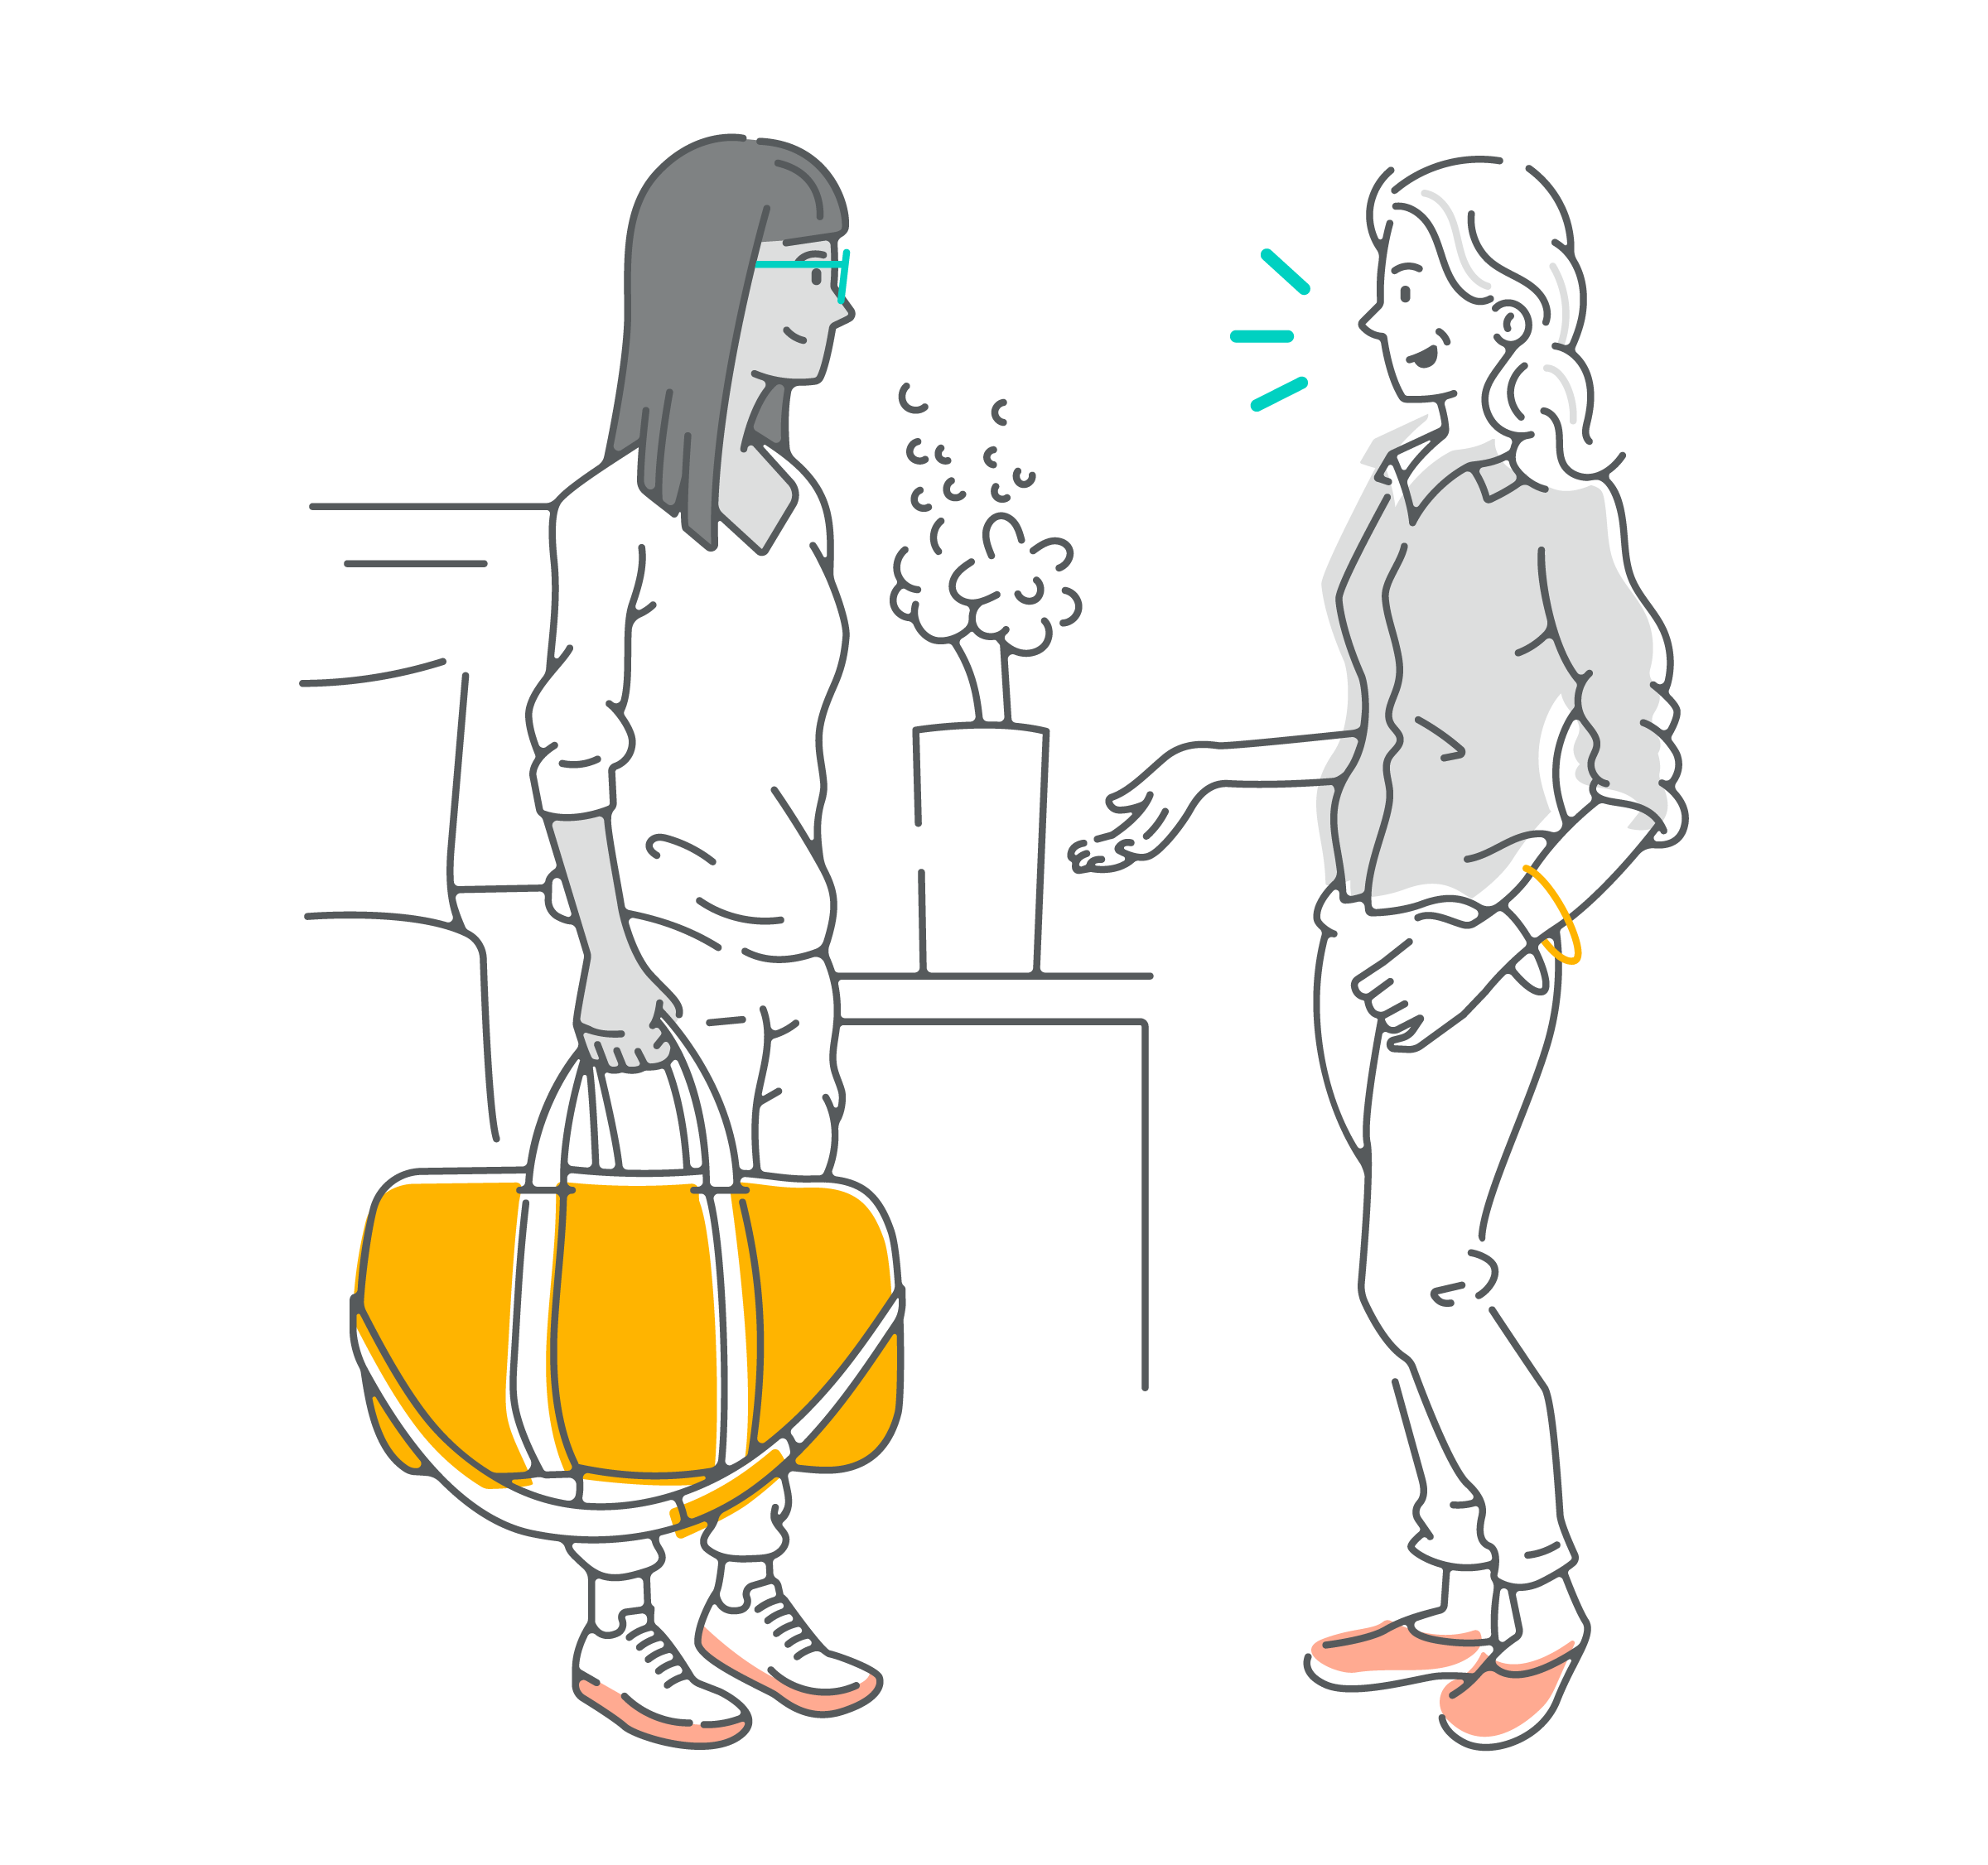 airbnb-illustrations-03.png